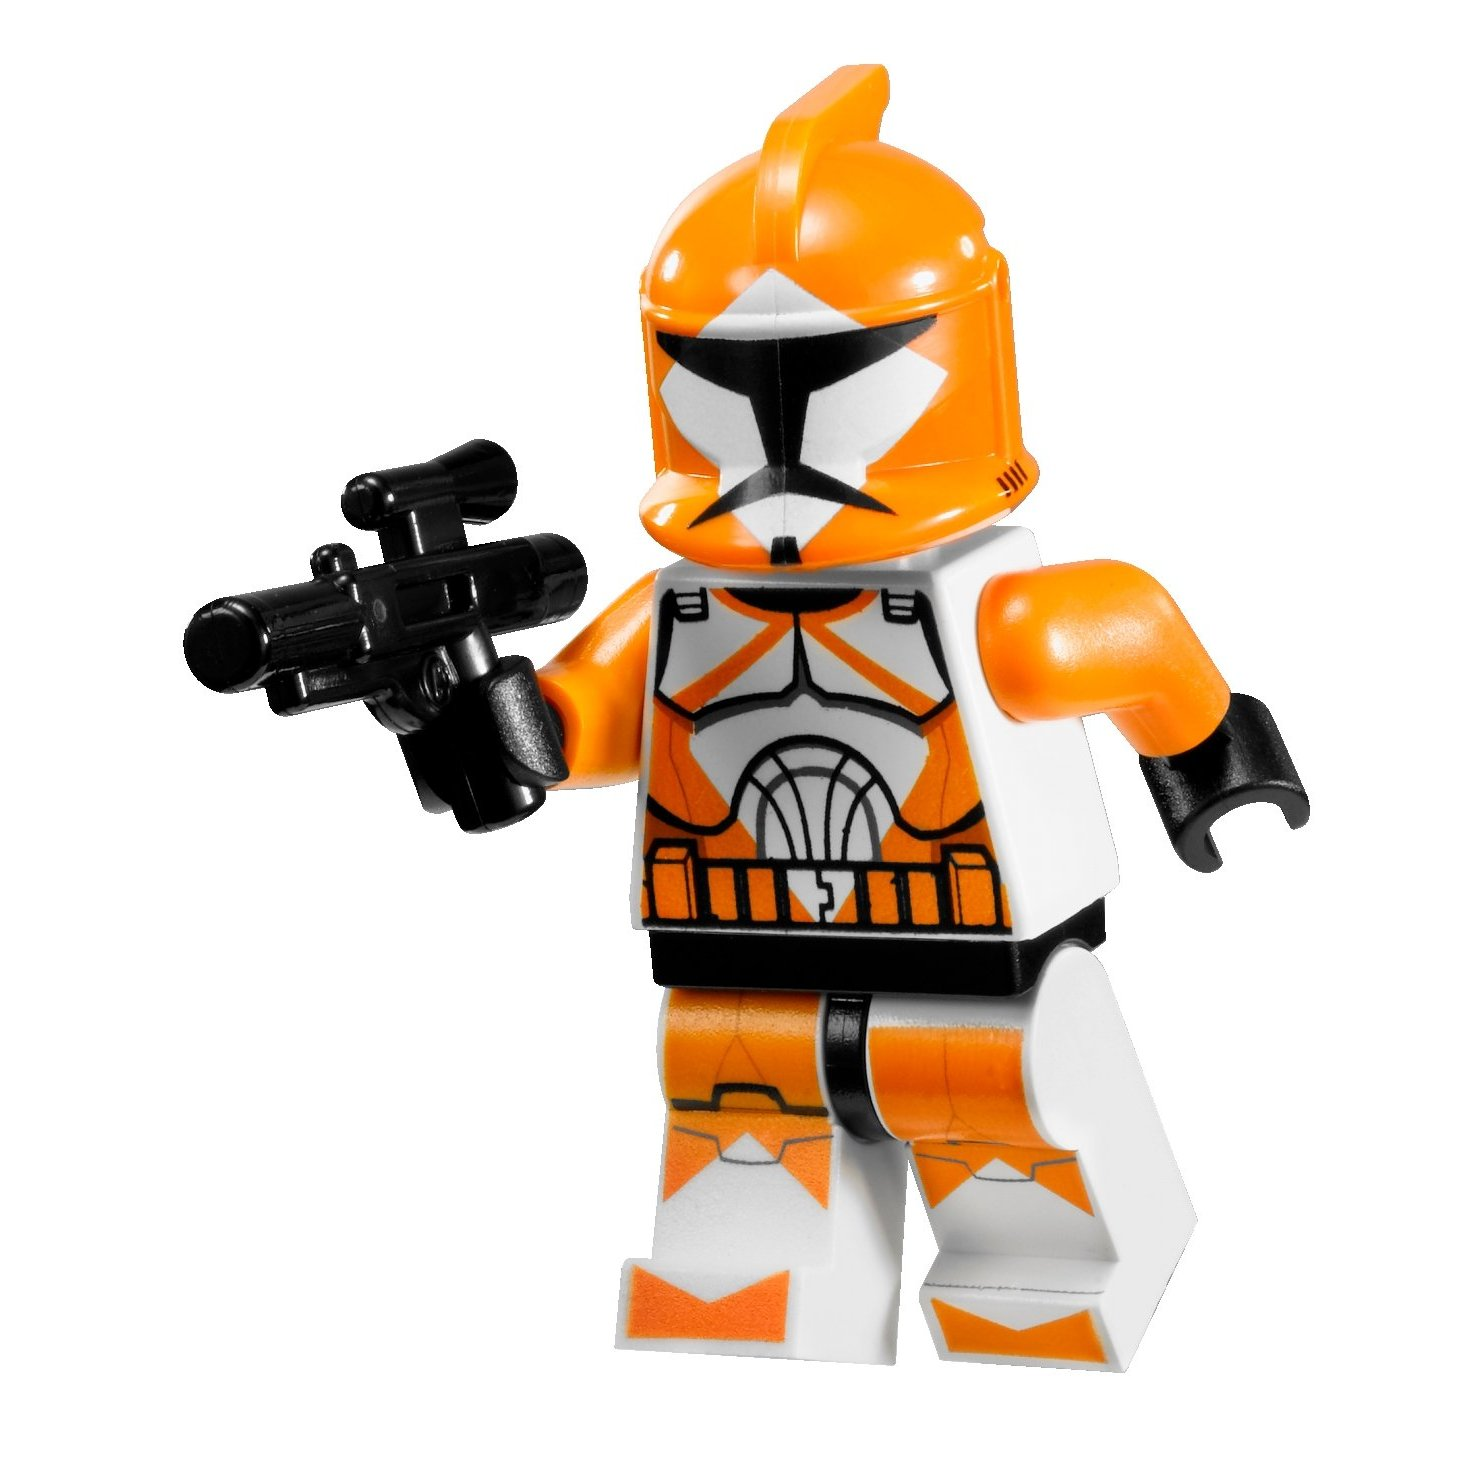 Lego Star Wars Clipart - Clipart Kid